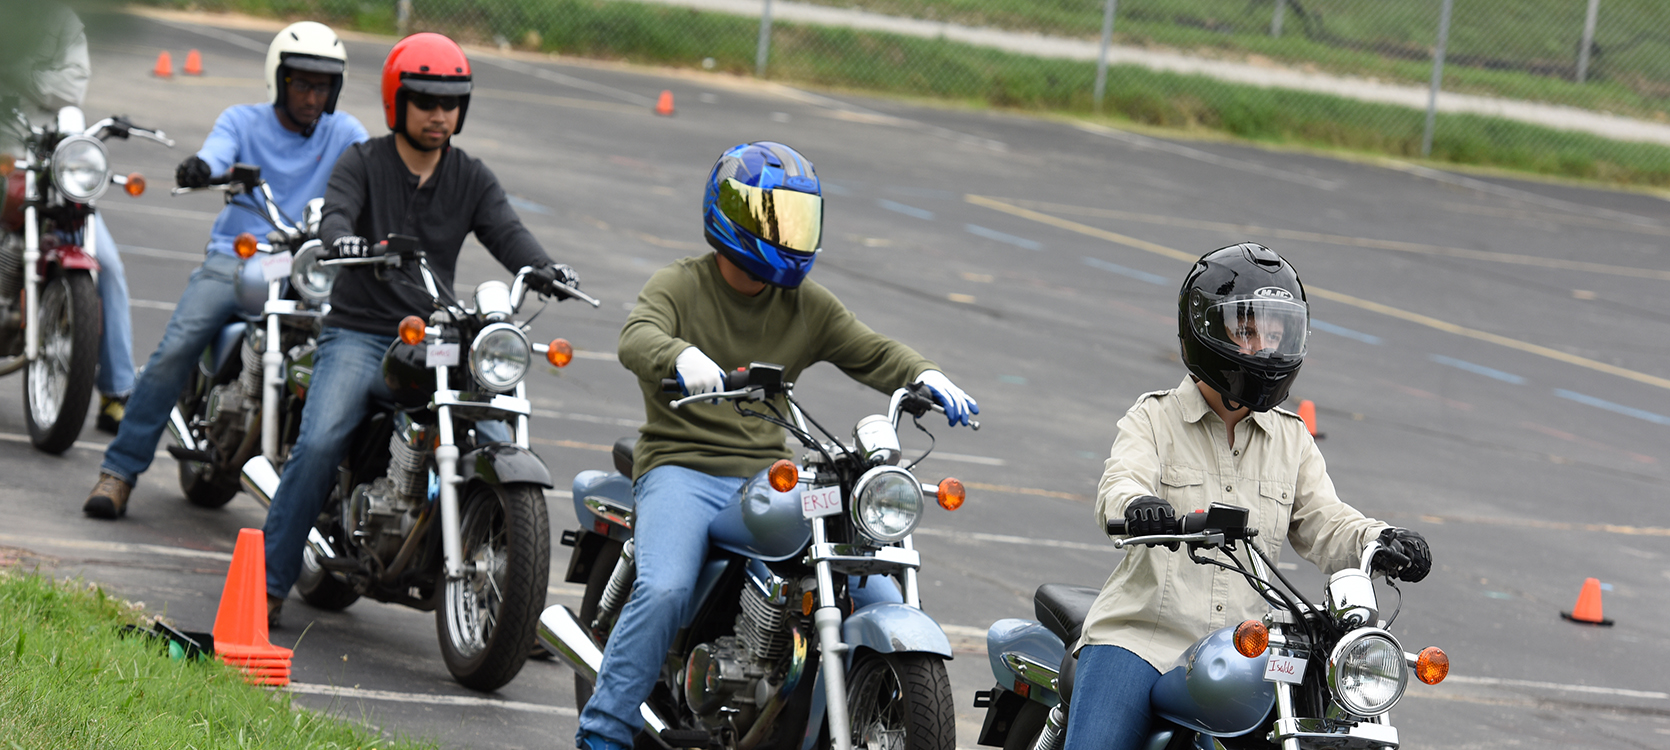 Get There From HereEarn your motorcycle license with hands-on training in small classes.